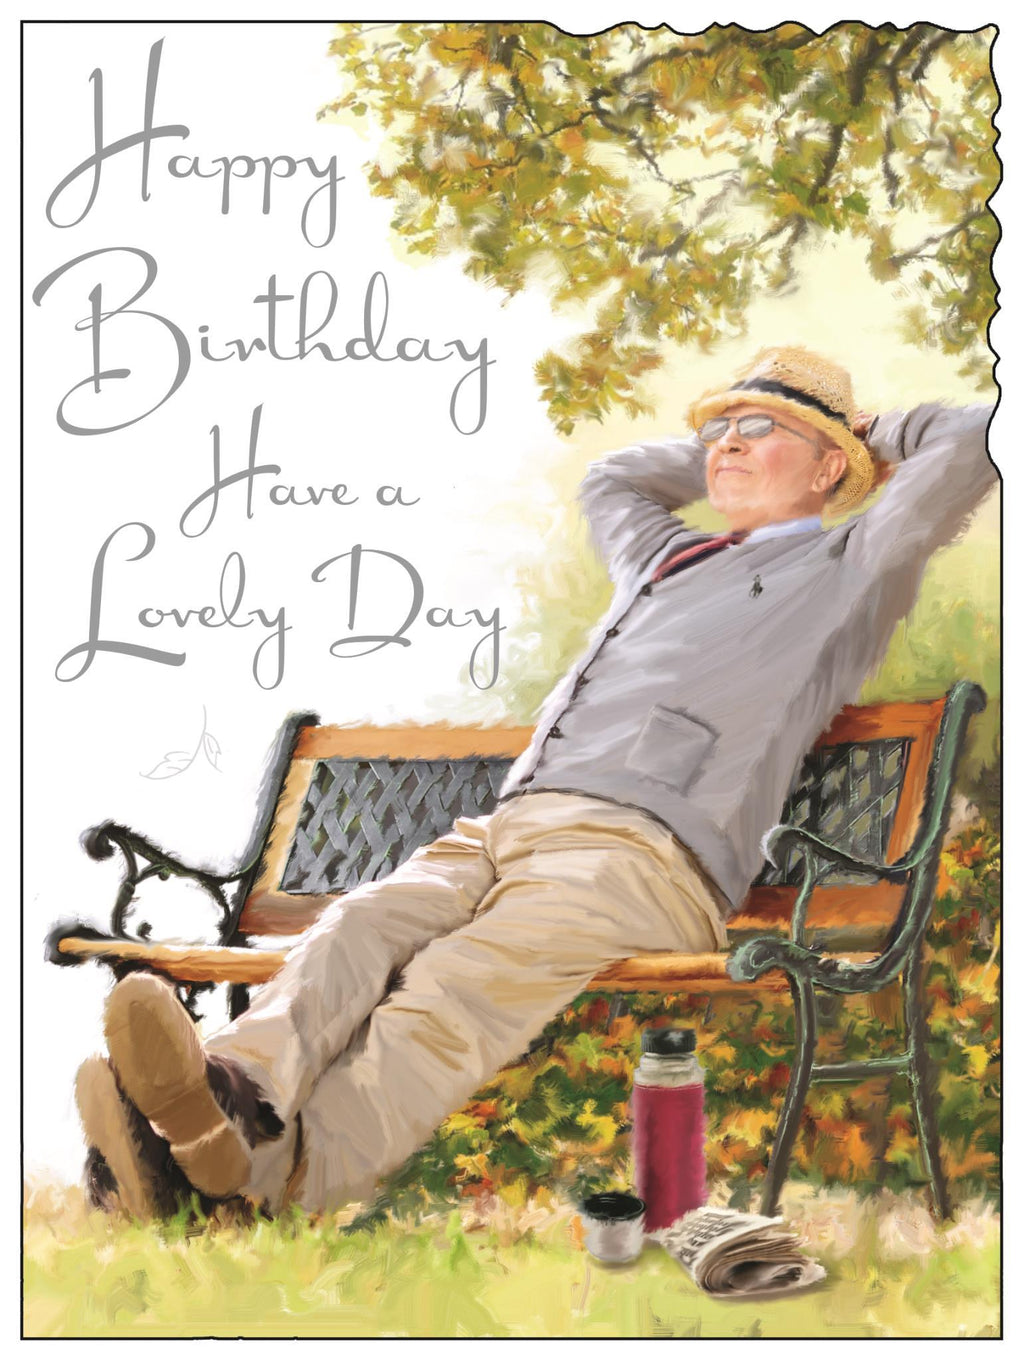 Male Birthday (Park Bench)